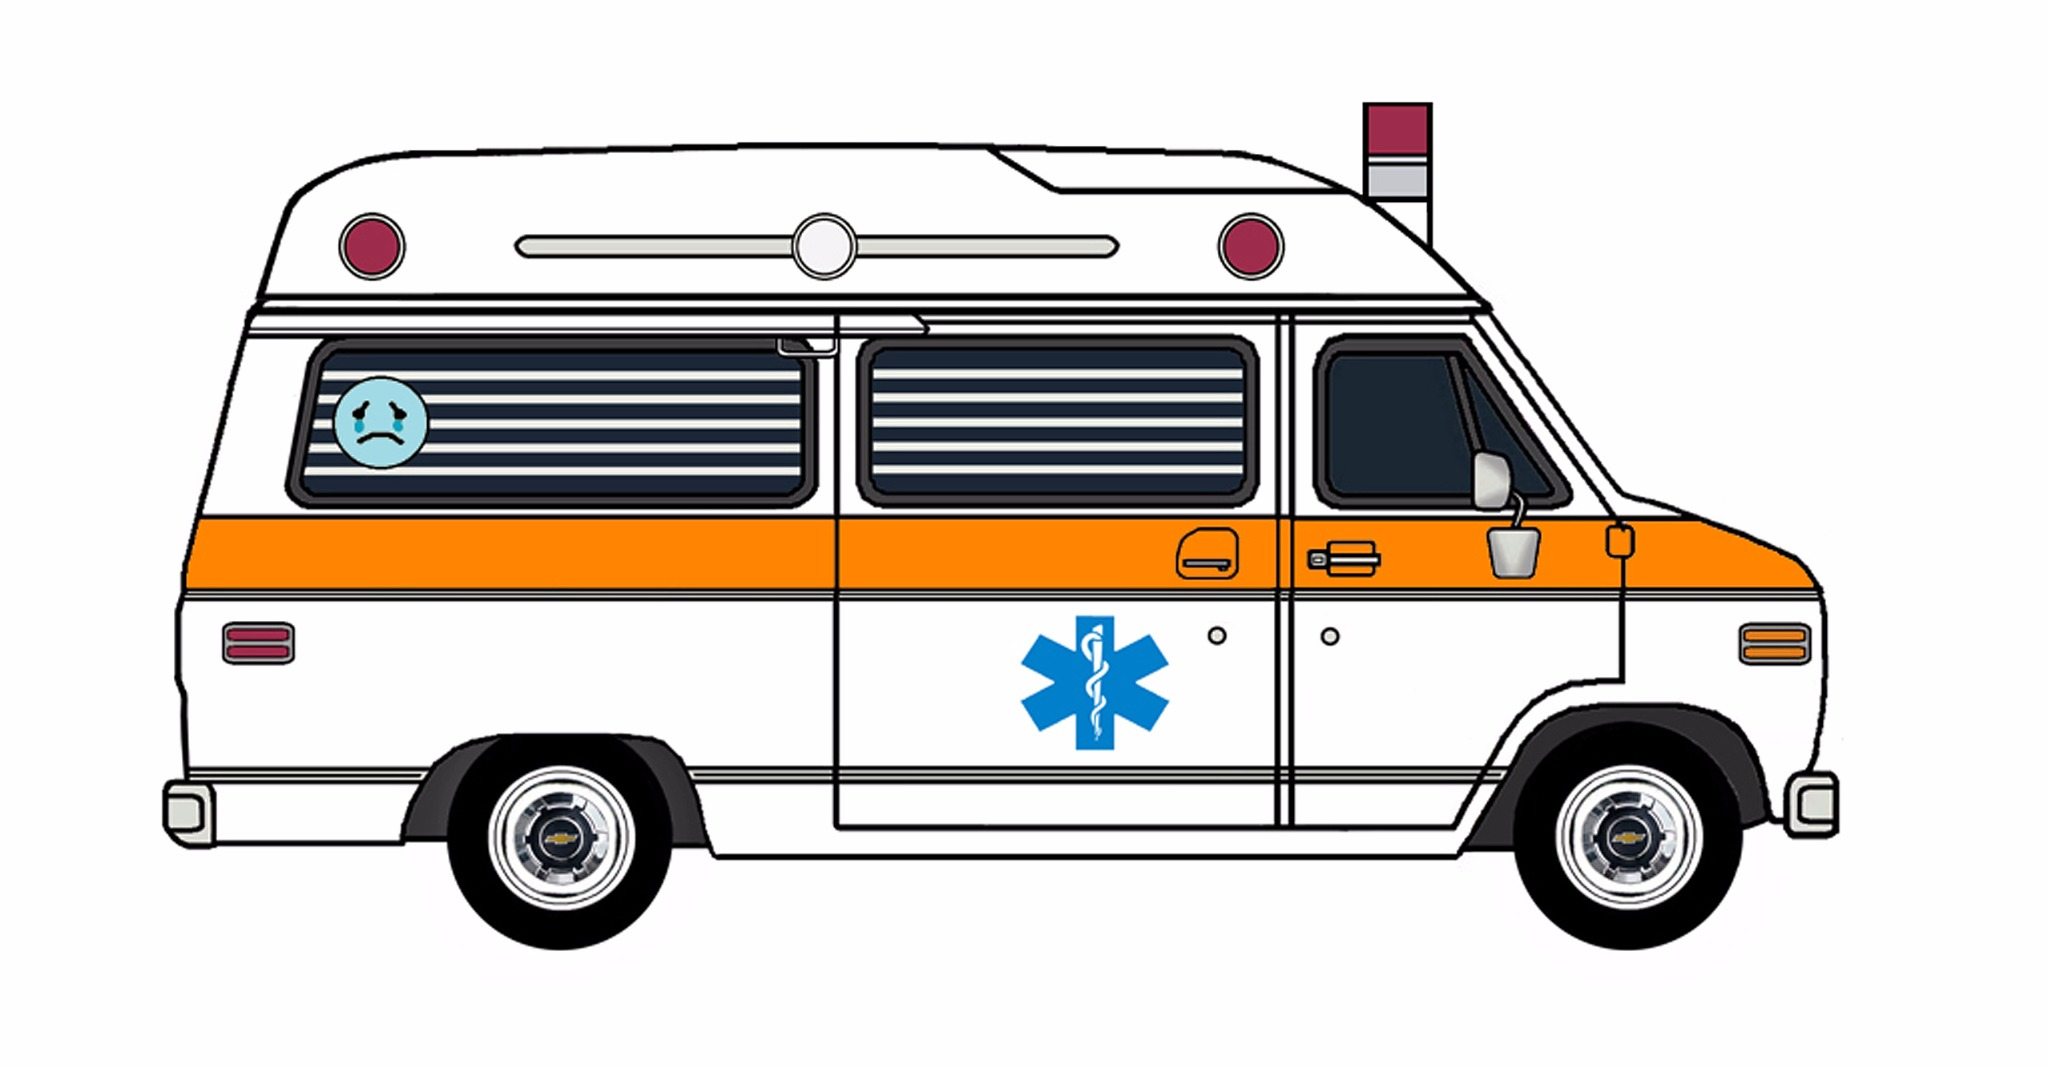 1977 Chevy G20 Ambulance WHITE & ORANGE